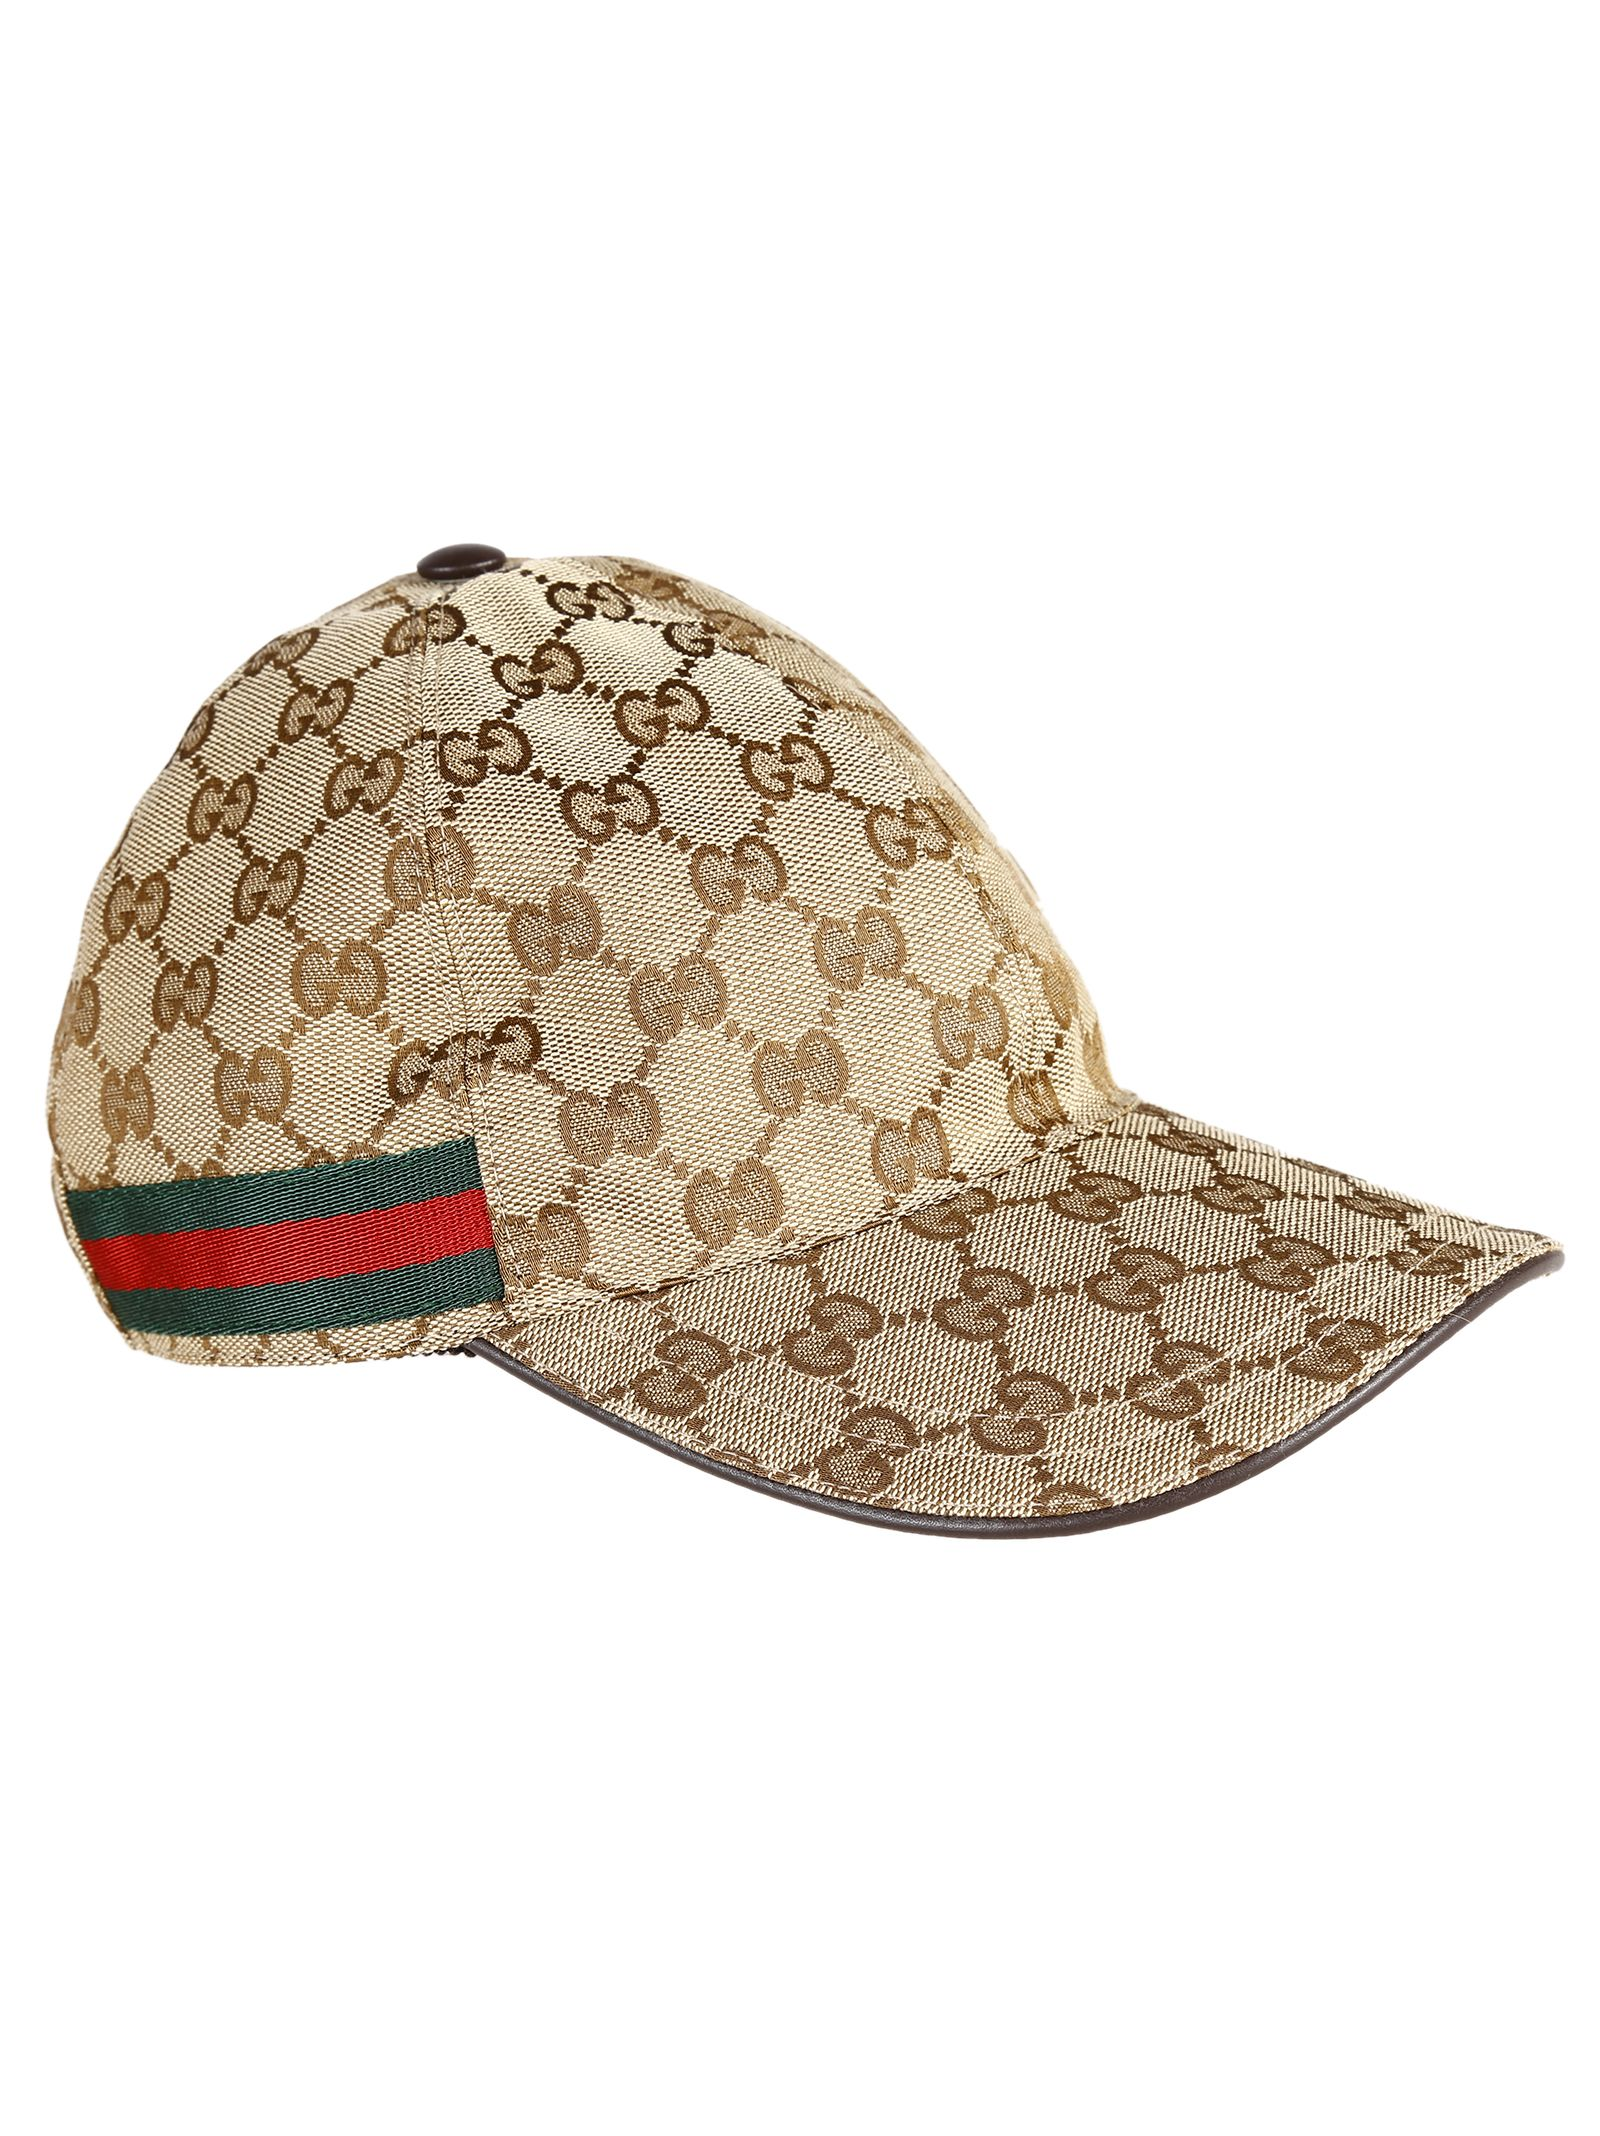 gucci gucci original gg canvas hat beige s hats